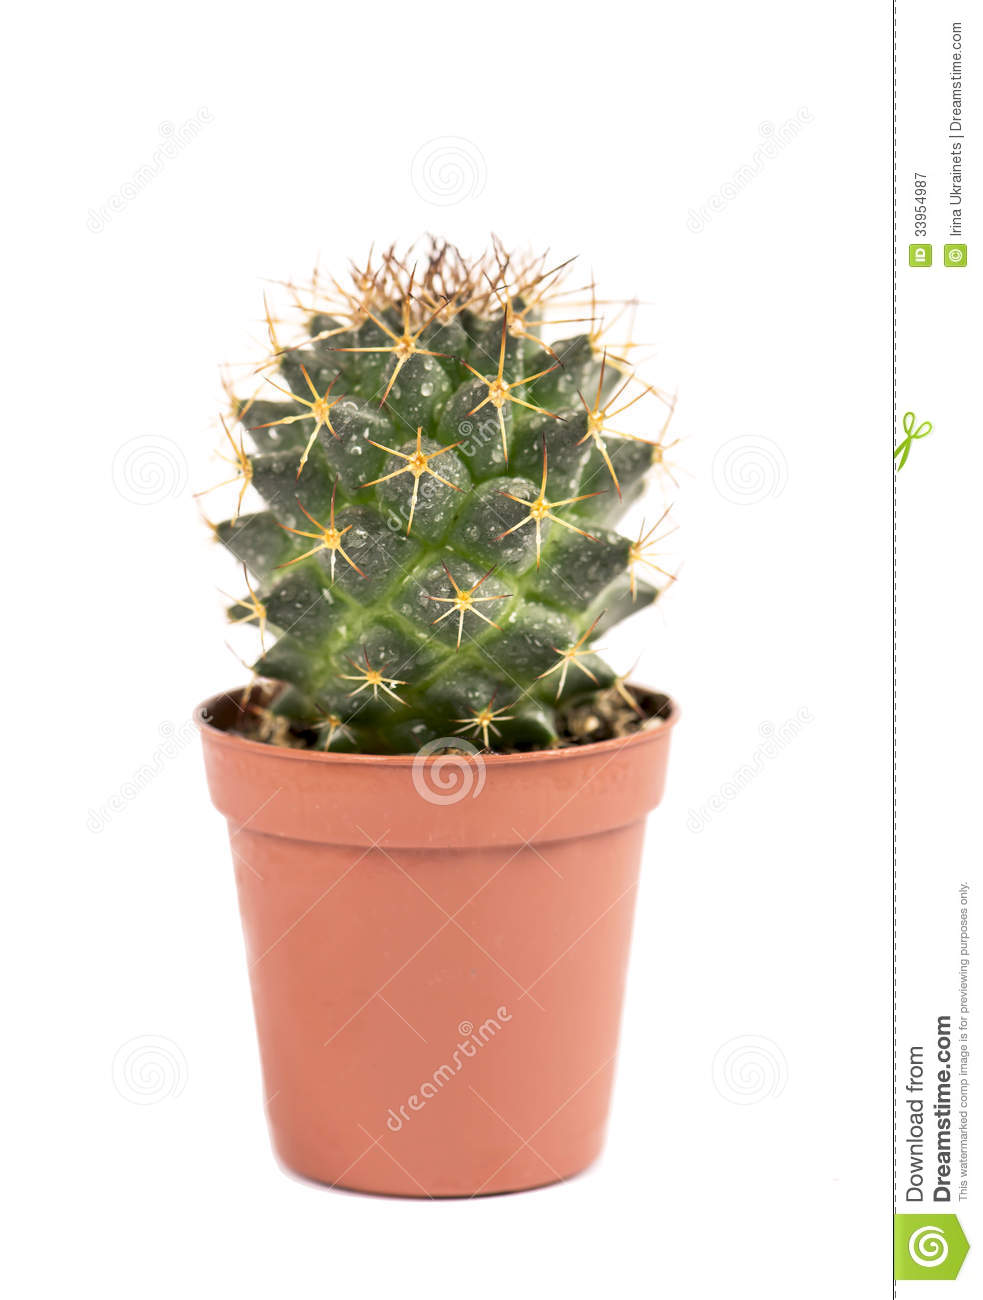 A cactus is a plant that grows where the soil is dry and rocky—most usually in the desert. A cactus doesn't have leaves like other plants do. Some are thin and very, very tall, and others are short and round like a ball a very spikey ball. There are even cacti that look like bushes and some that look like ping pong paddles.